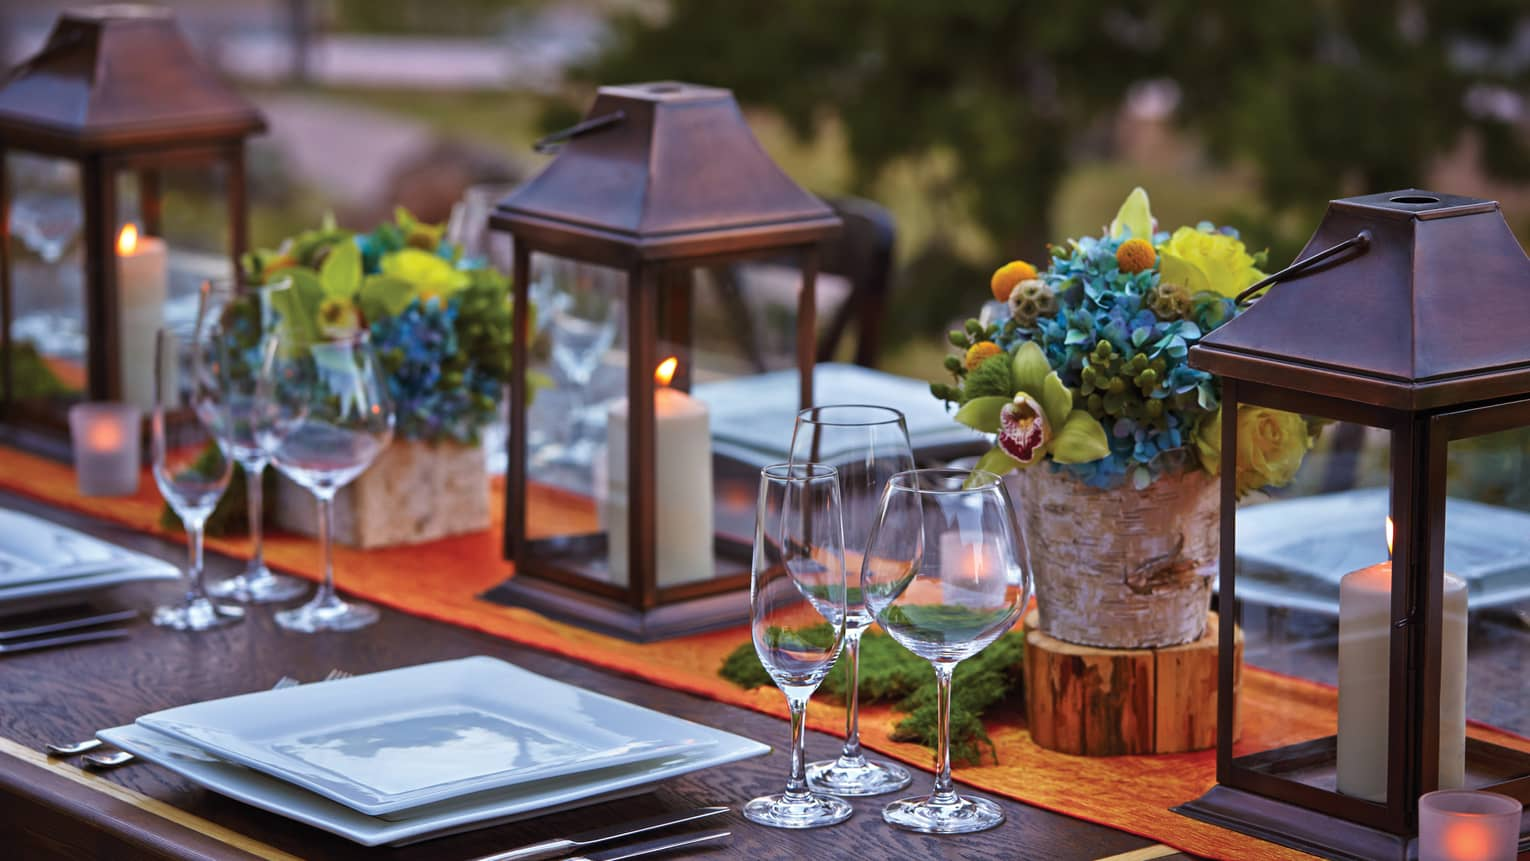 Close-up of lanterns, flowers on patio dining table at sunset